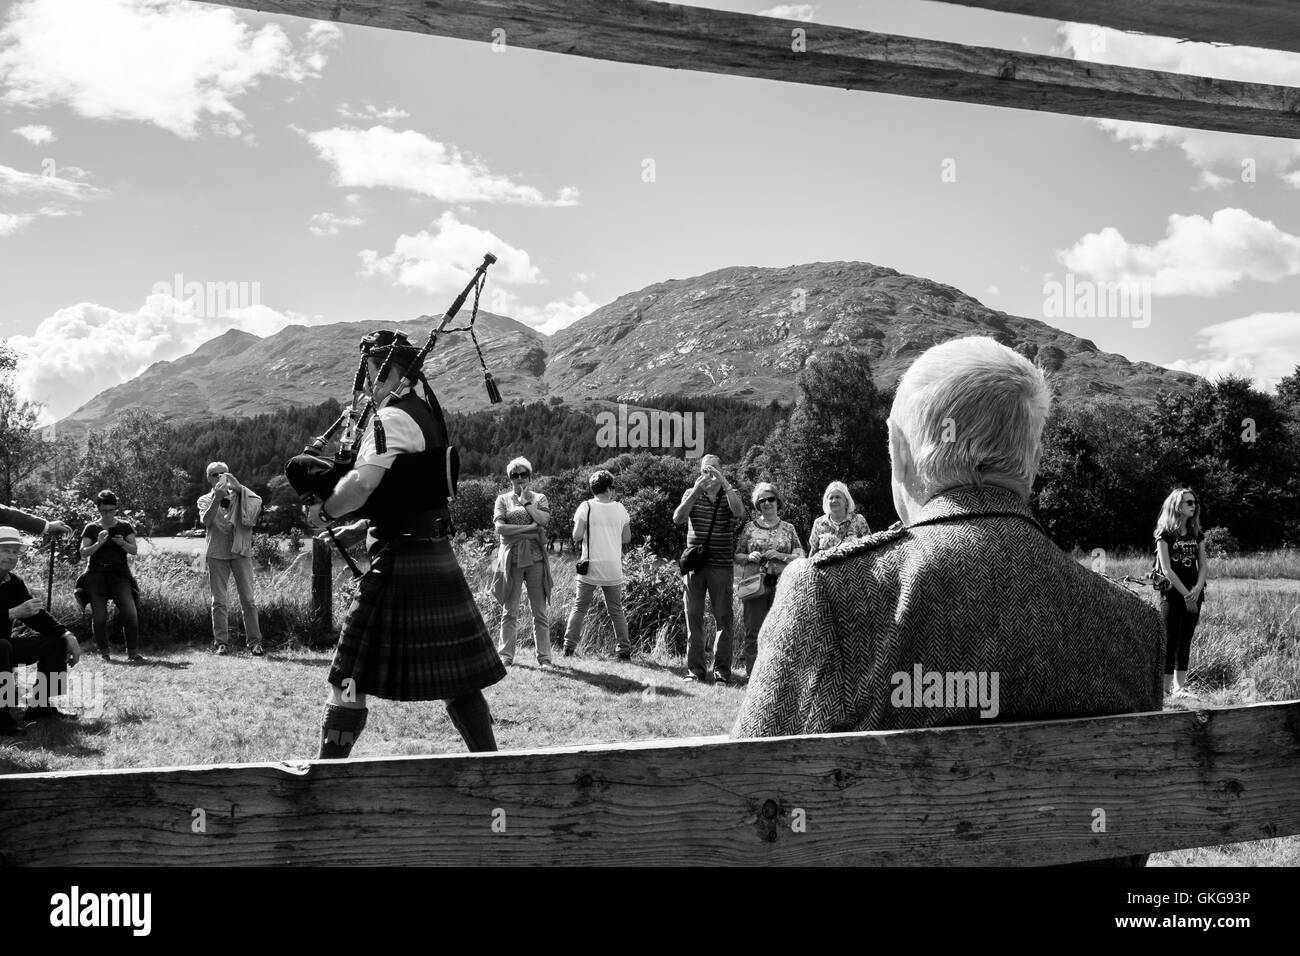 Glenfinnan gathering and games historic annual event - Stock Image